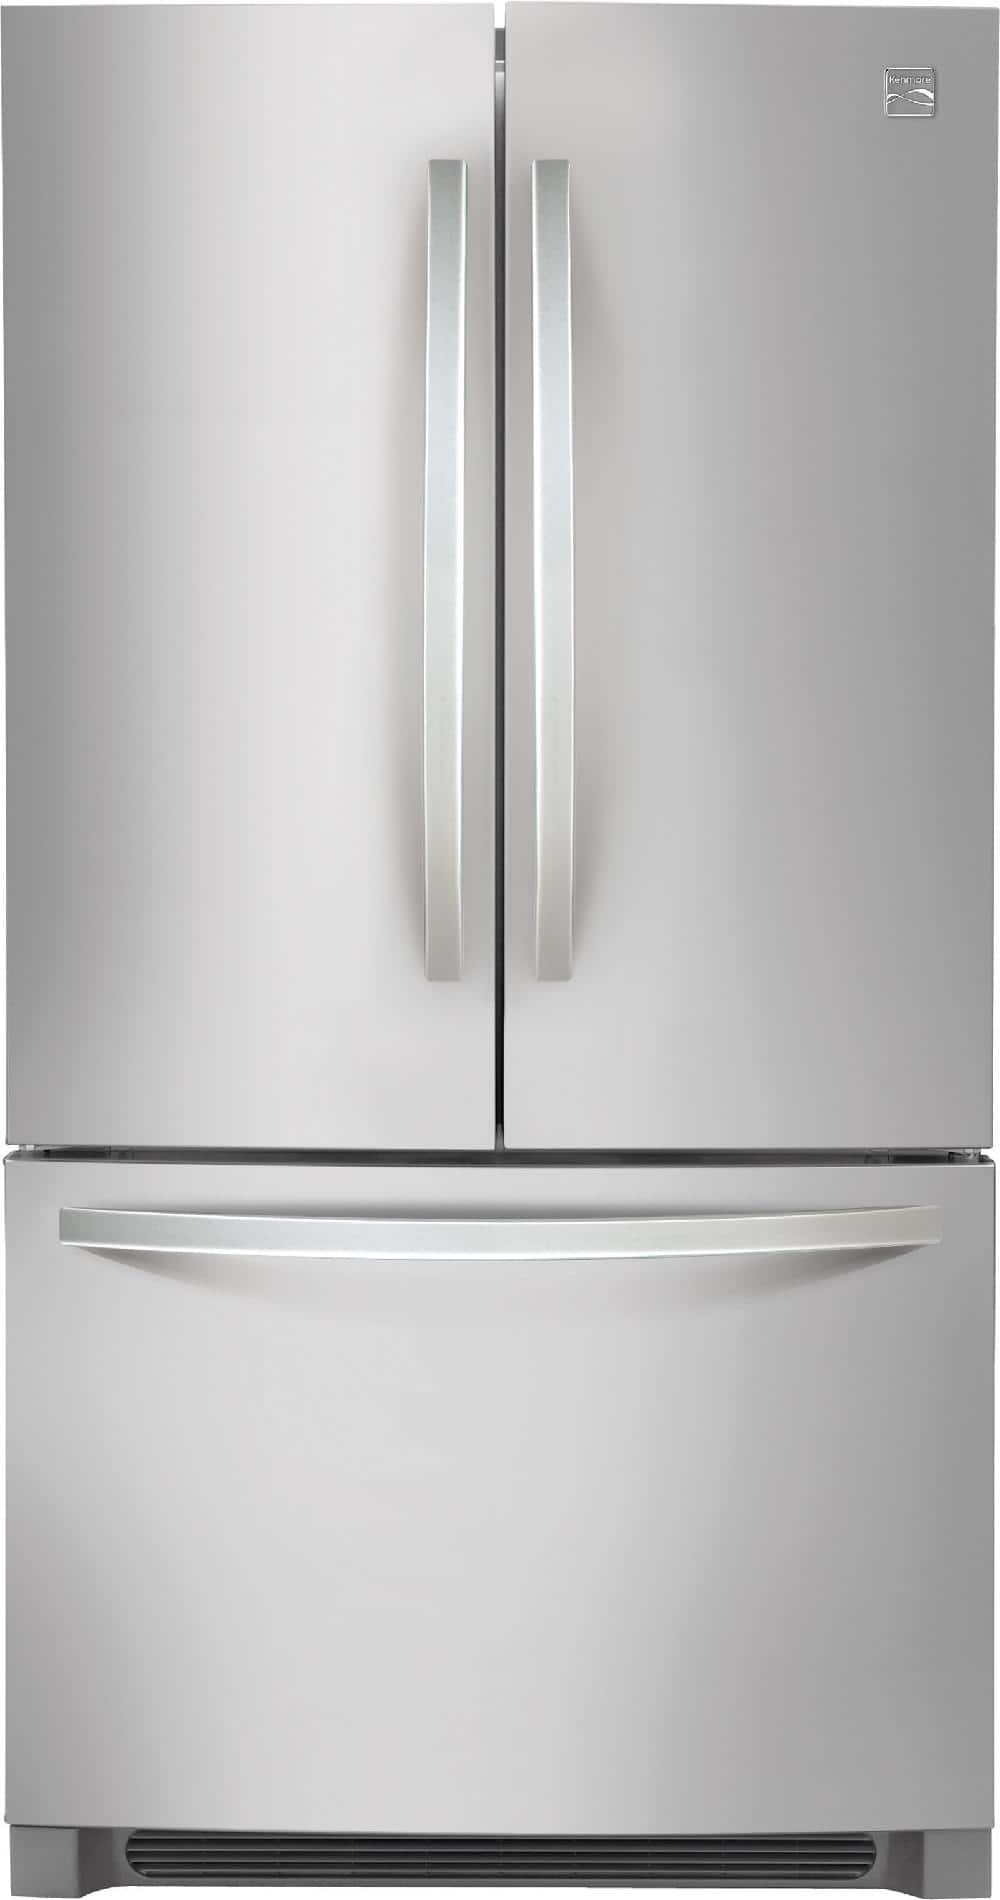 Kenmore 27.6 cu. ft. French Door Stainless Steel Refrigerator $1014.99